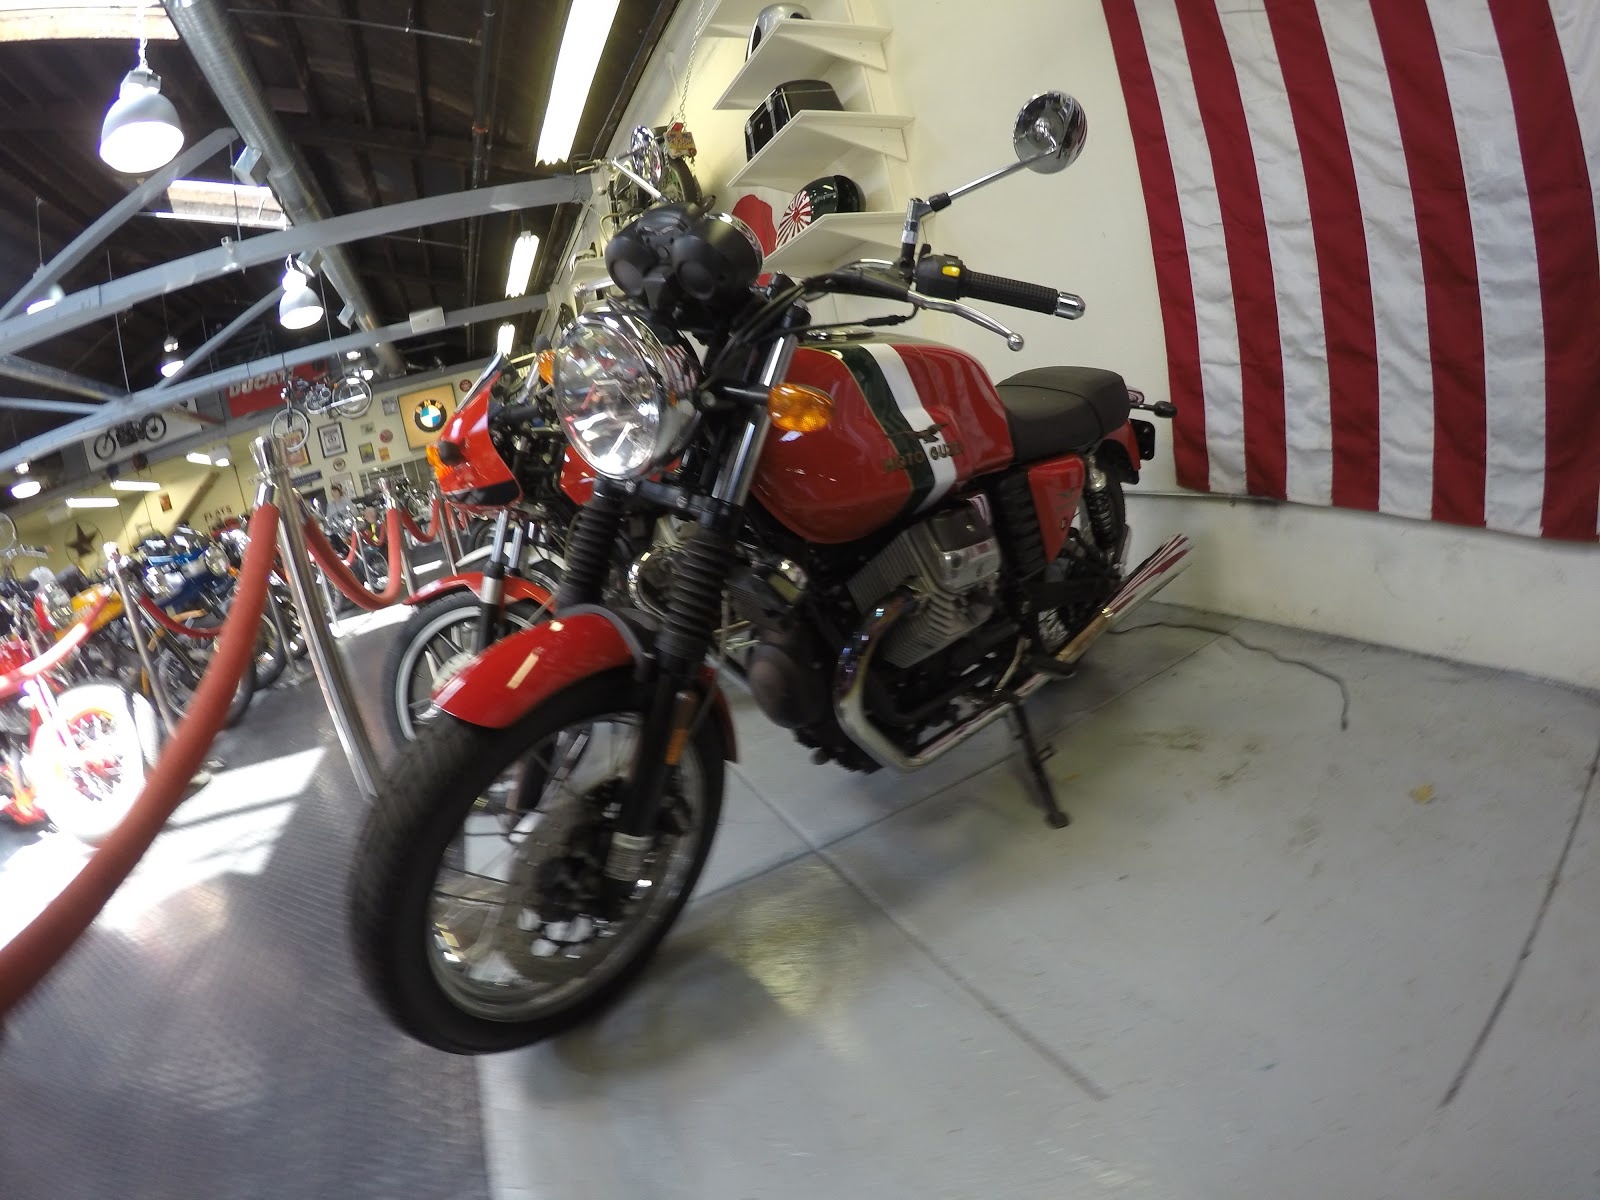 NYDUCATI presents Billy Joel's 20th Century Cycles Moto Guzzi Le Mans 2